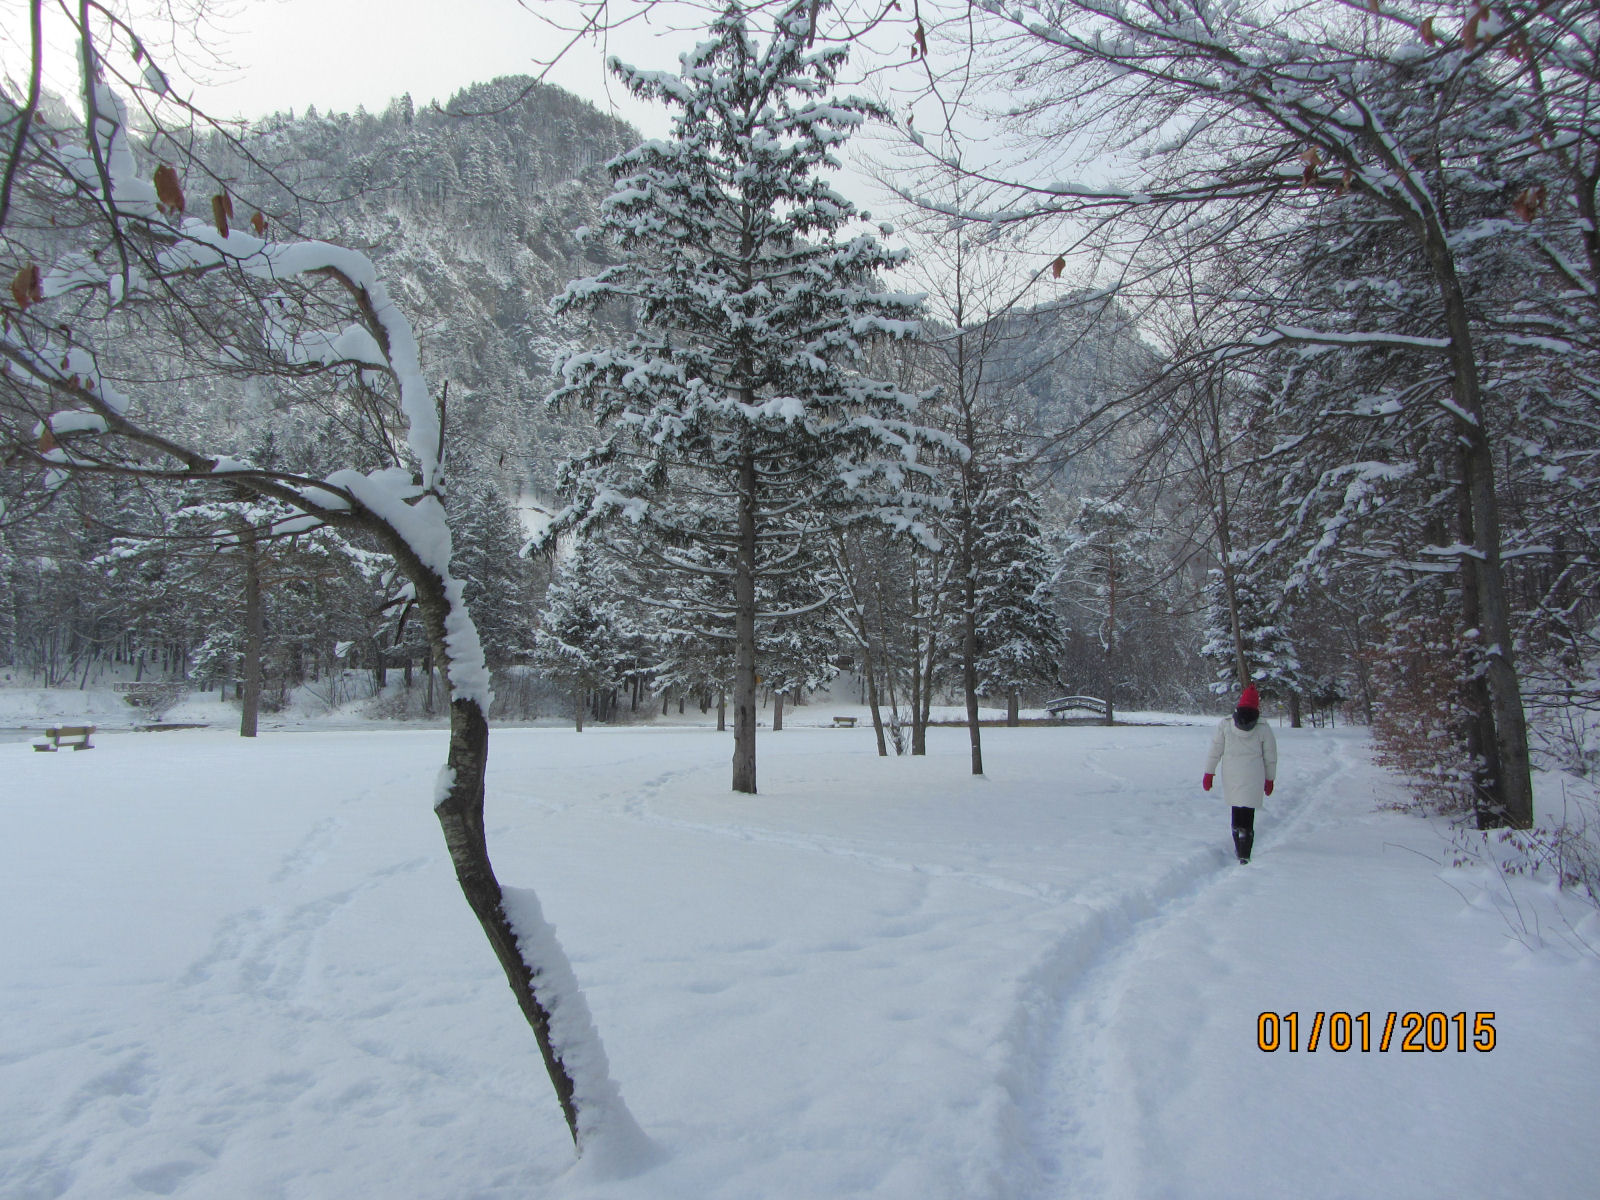 All is white in the Gorenjska region of Slovenia